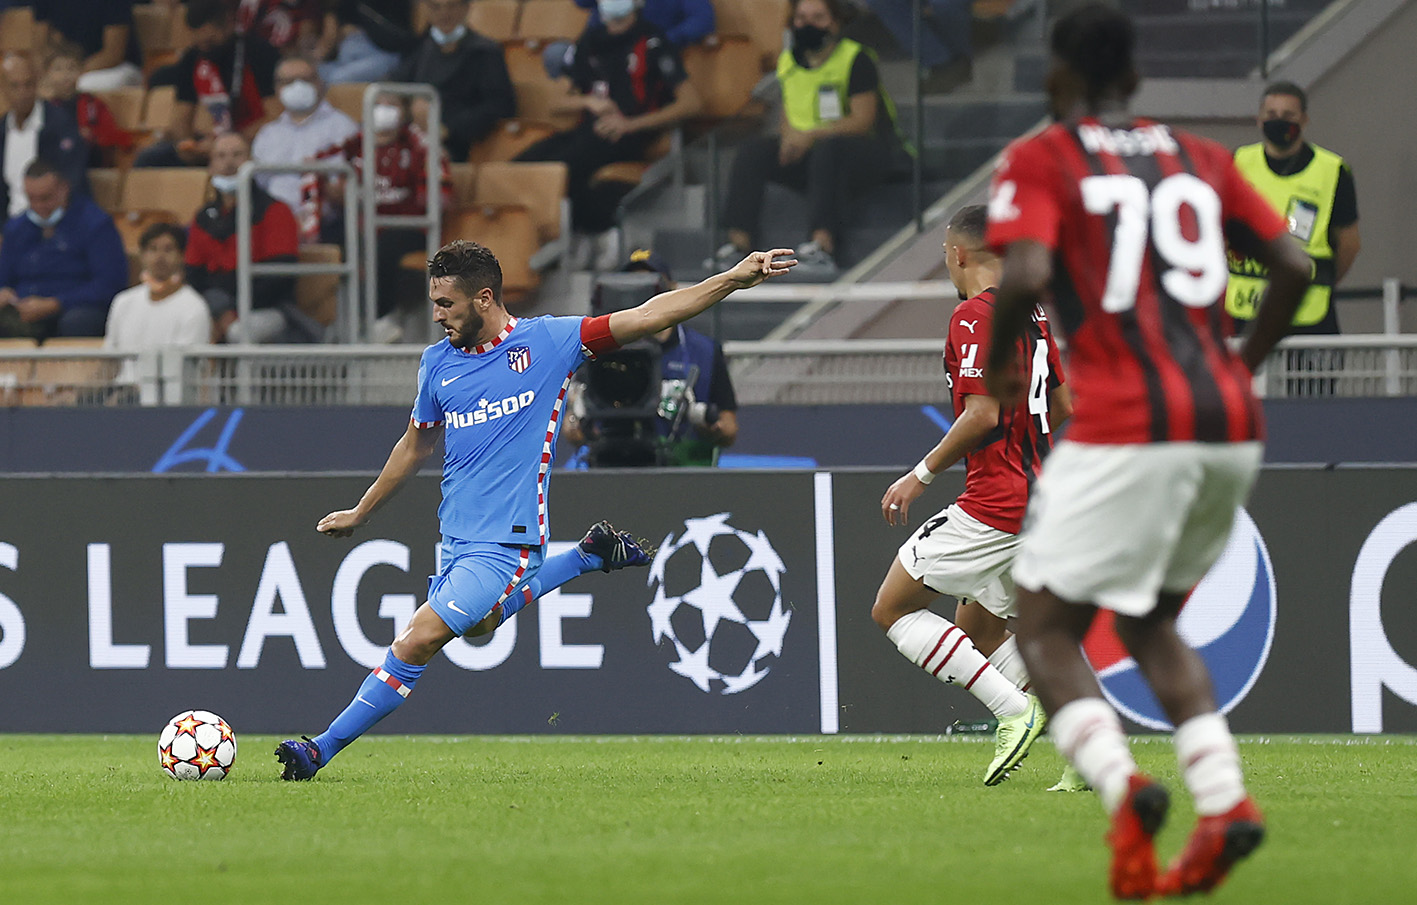 Milan vs Atletico Madrid in the Champions League